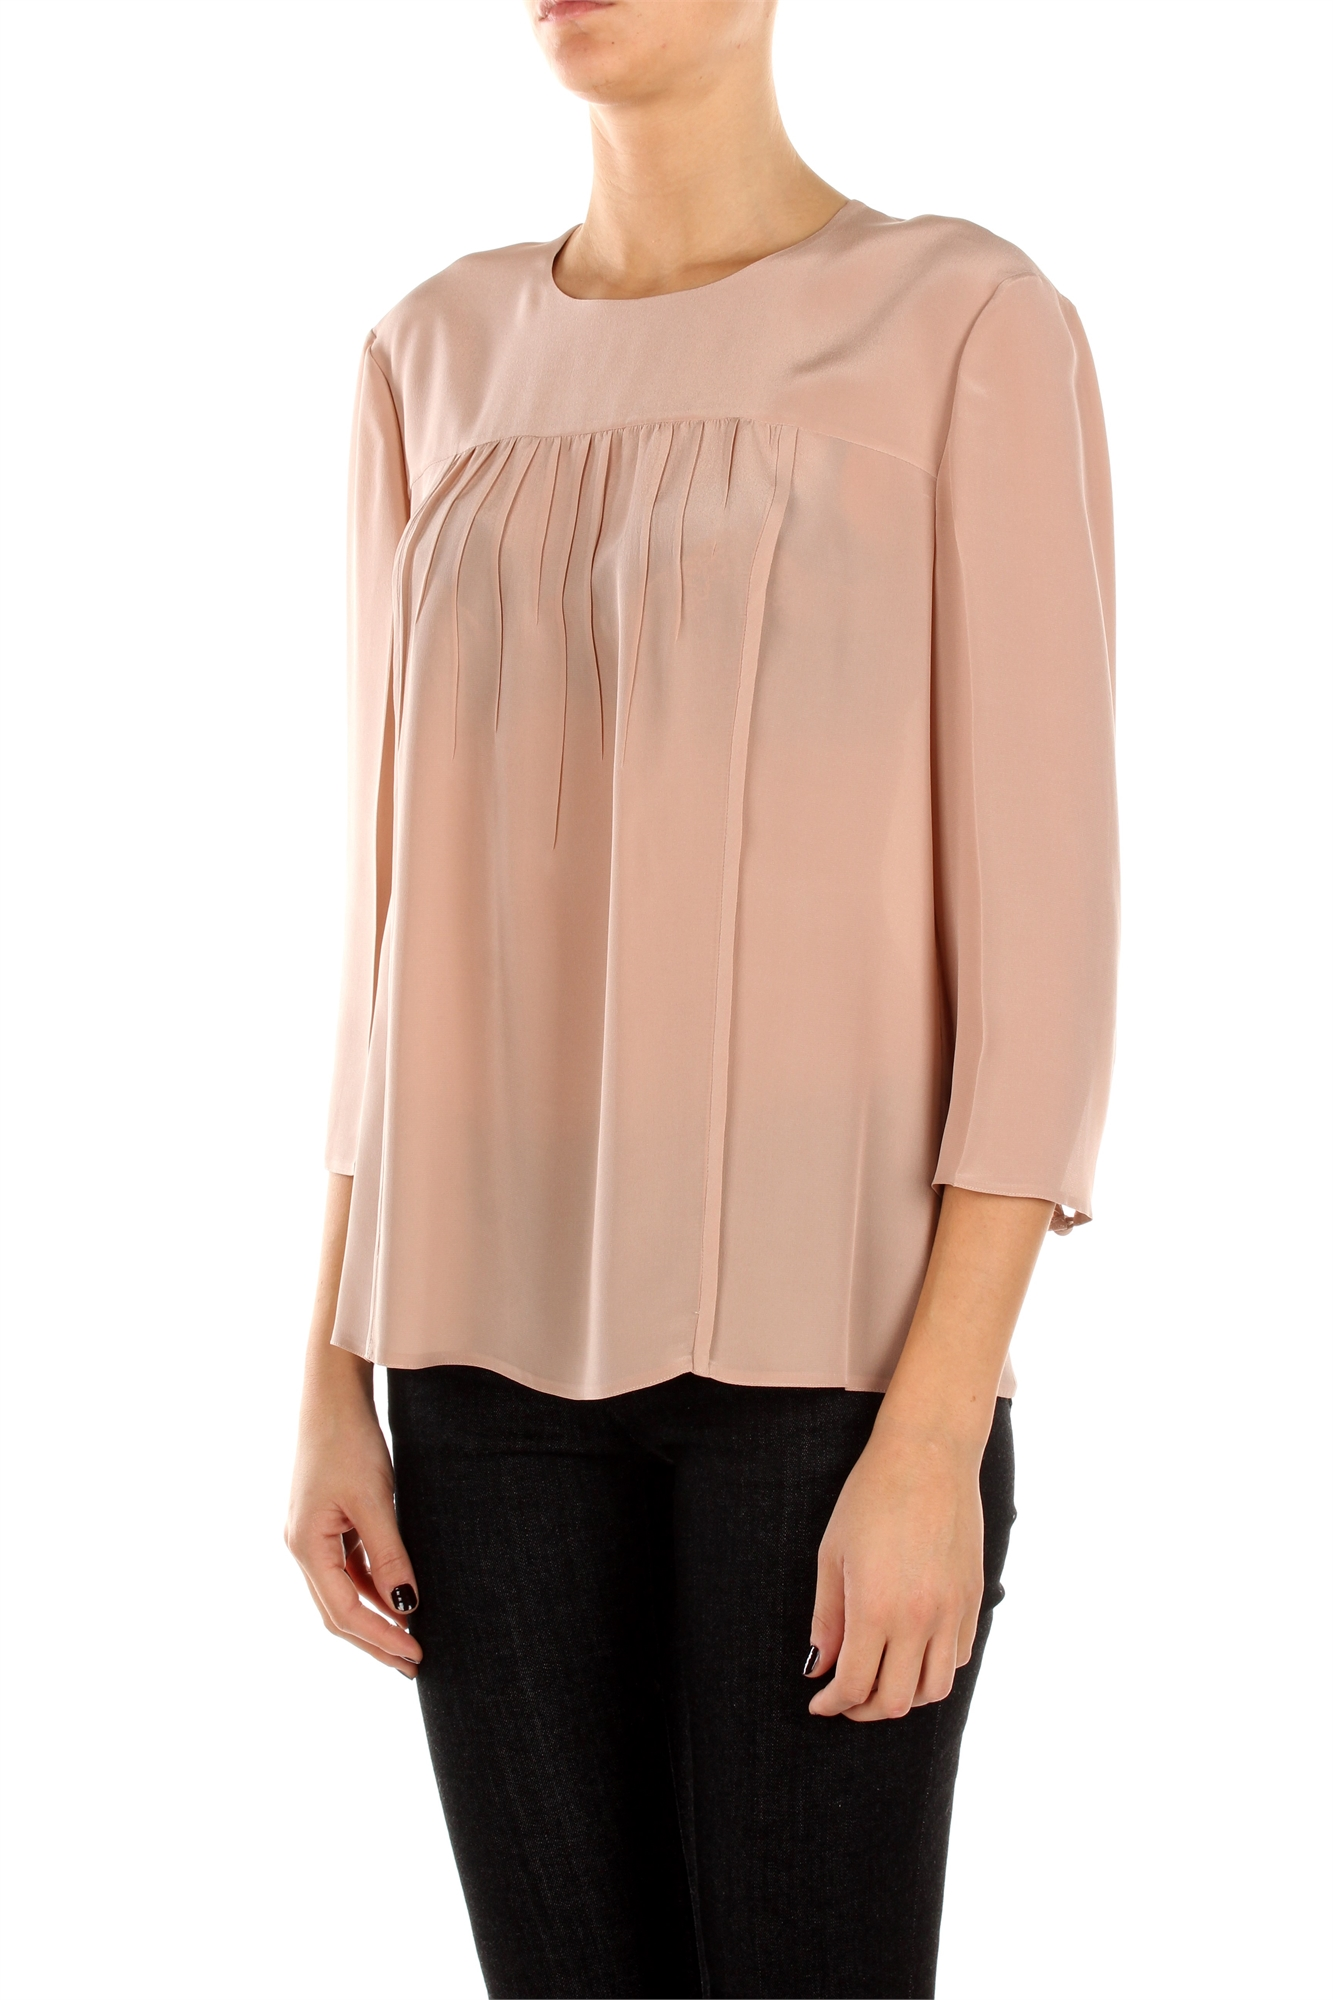 Check our latest styles of Tops such as Silk at REVOLVE with free day shipping and returns, 30 day price match guarantee.